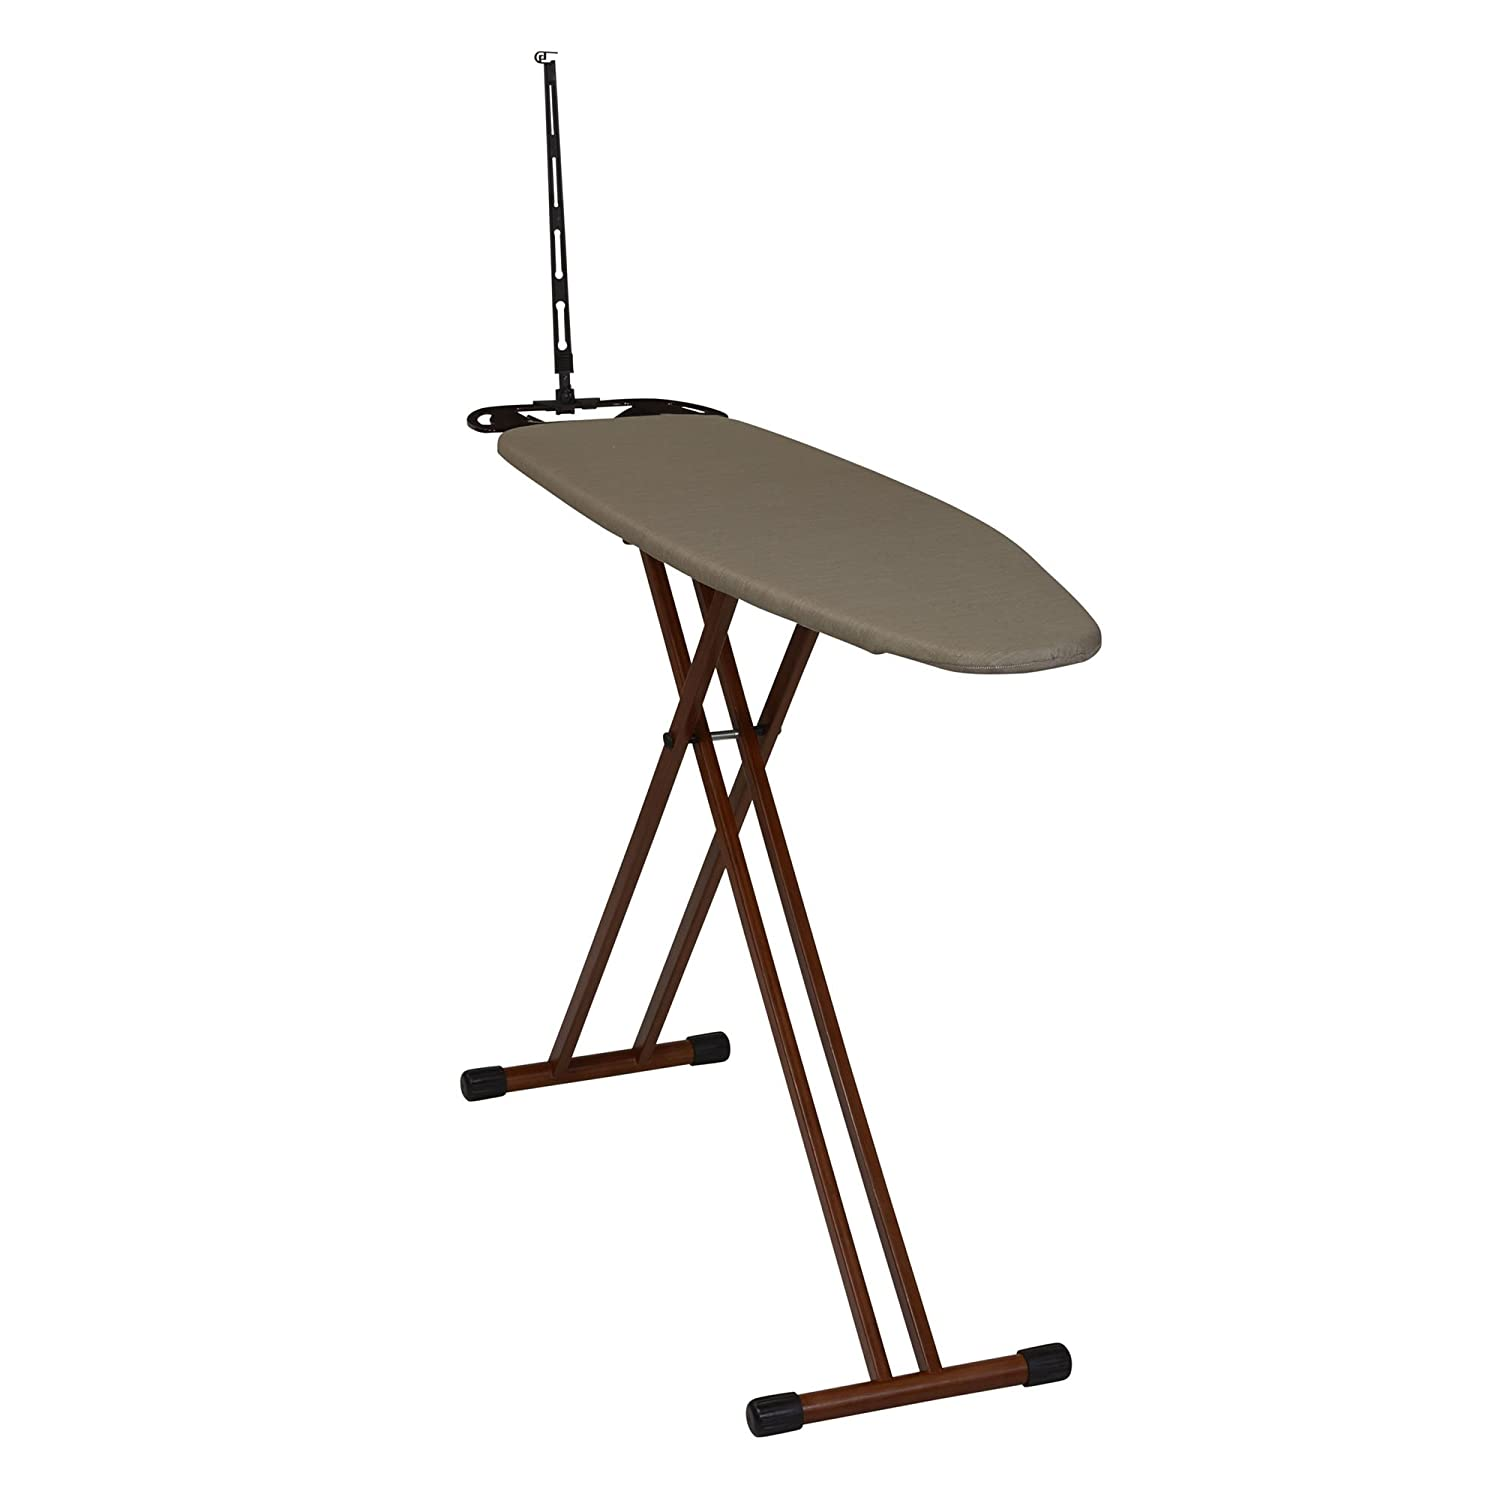 Household Essentials Eucalyptus Tri-Leg Ironing Board with Iron Rest and Cord Minder 885414-1